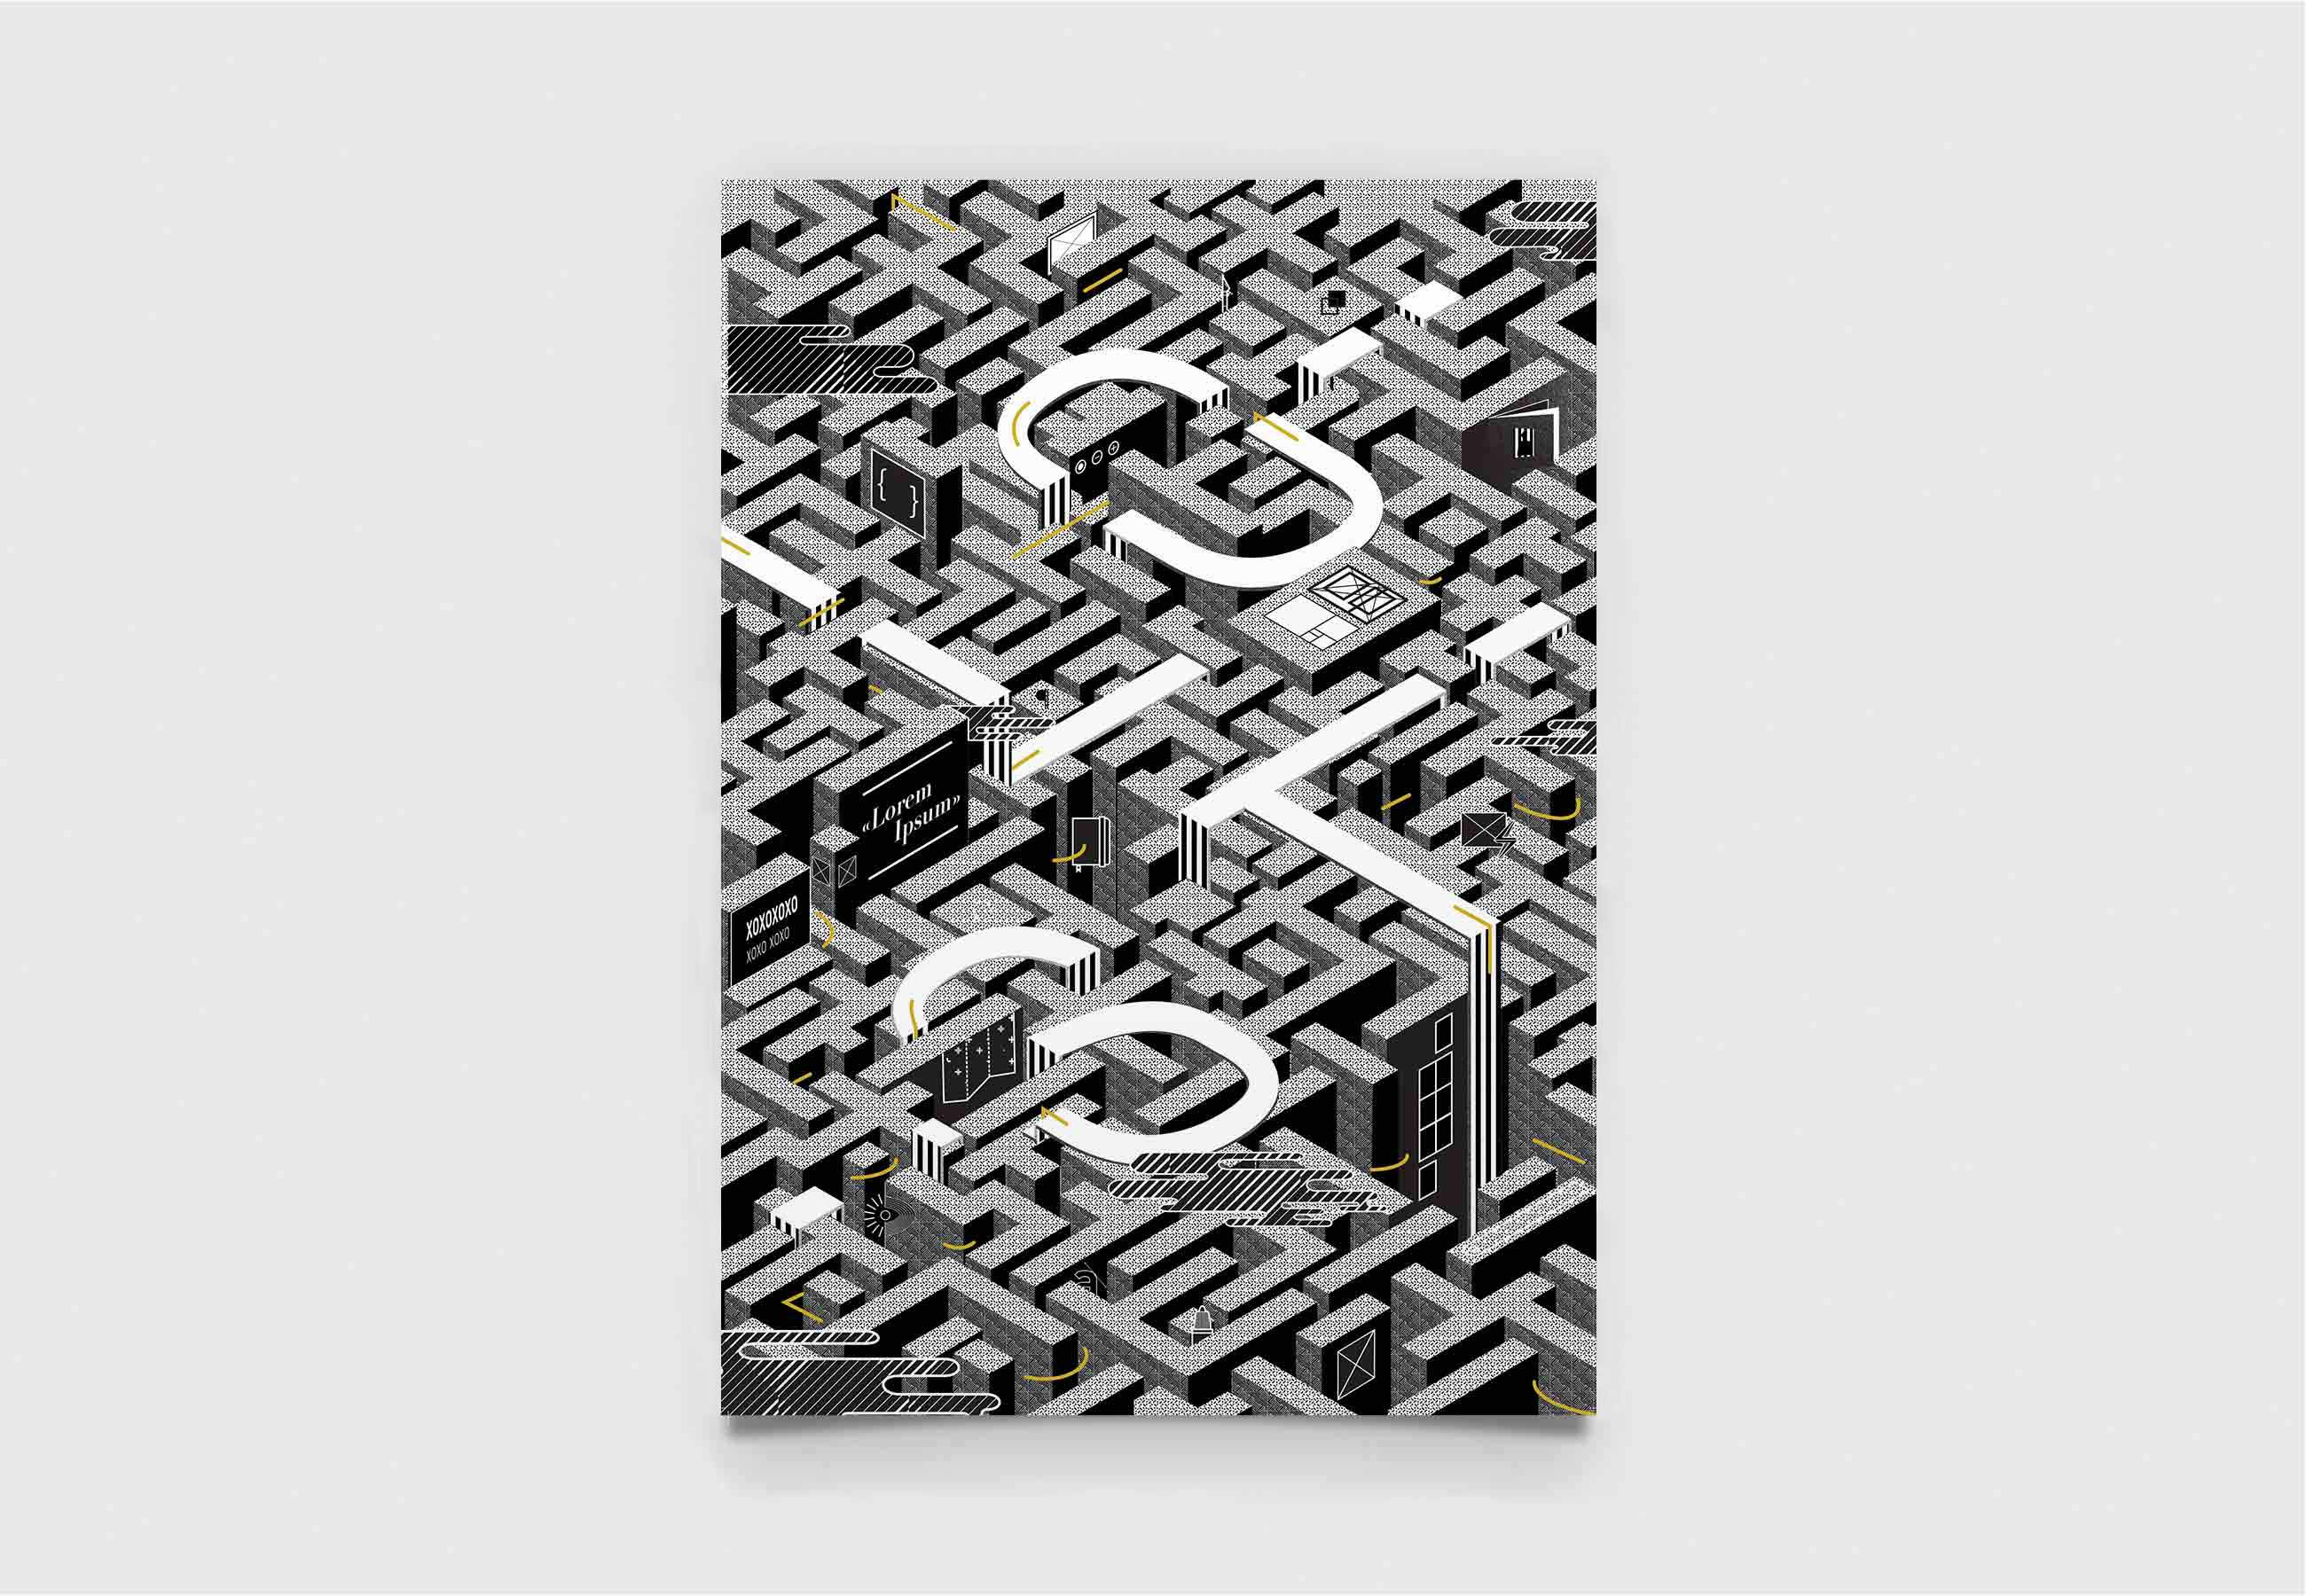 graphic_design_scotland_02_parallele_graphique